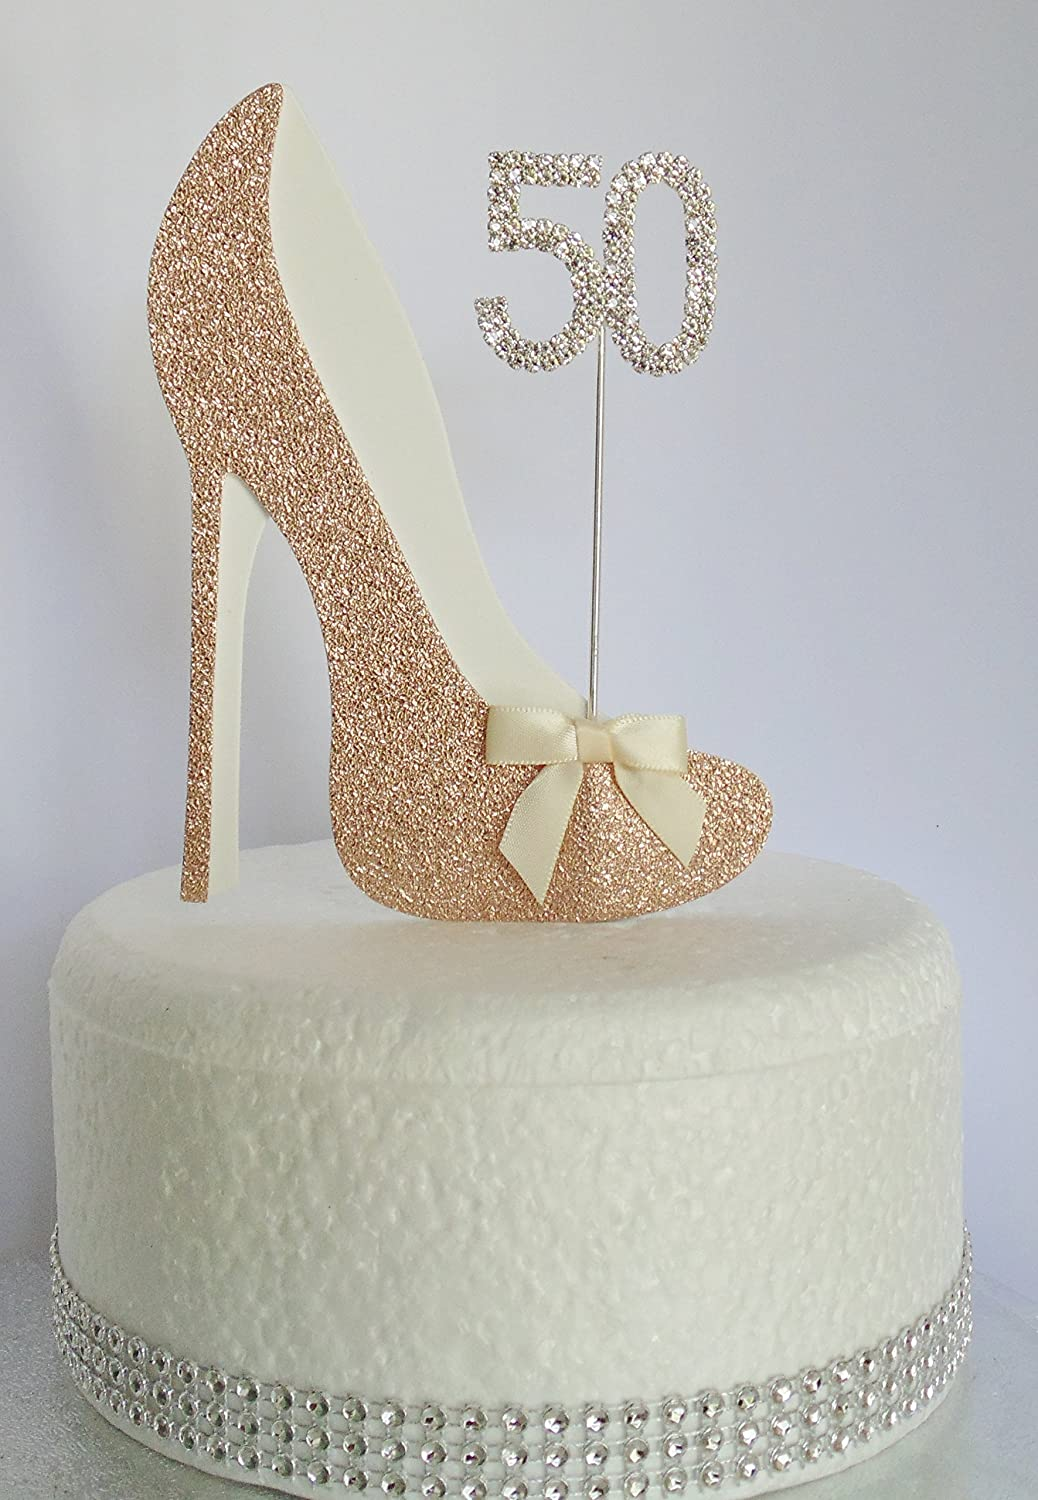 Groovy Age 50 Birthday Cake Decoration 50Th Rose Gold Shoe With White Personalised Birthday Cards Paralily Jamesorg